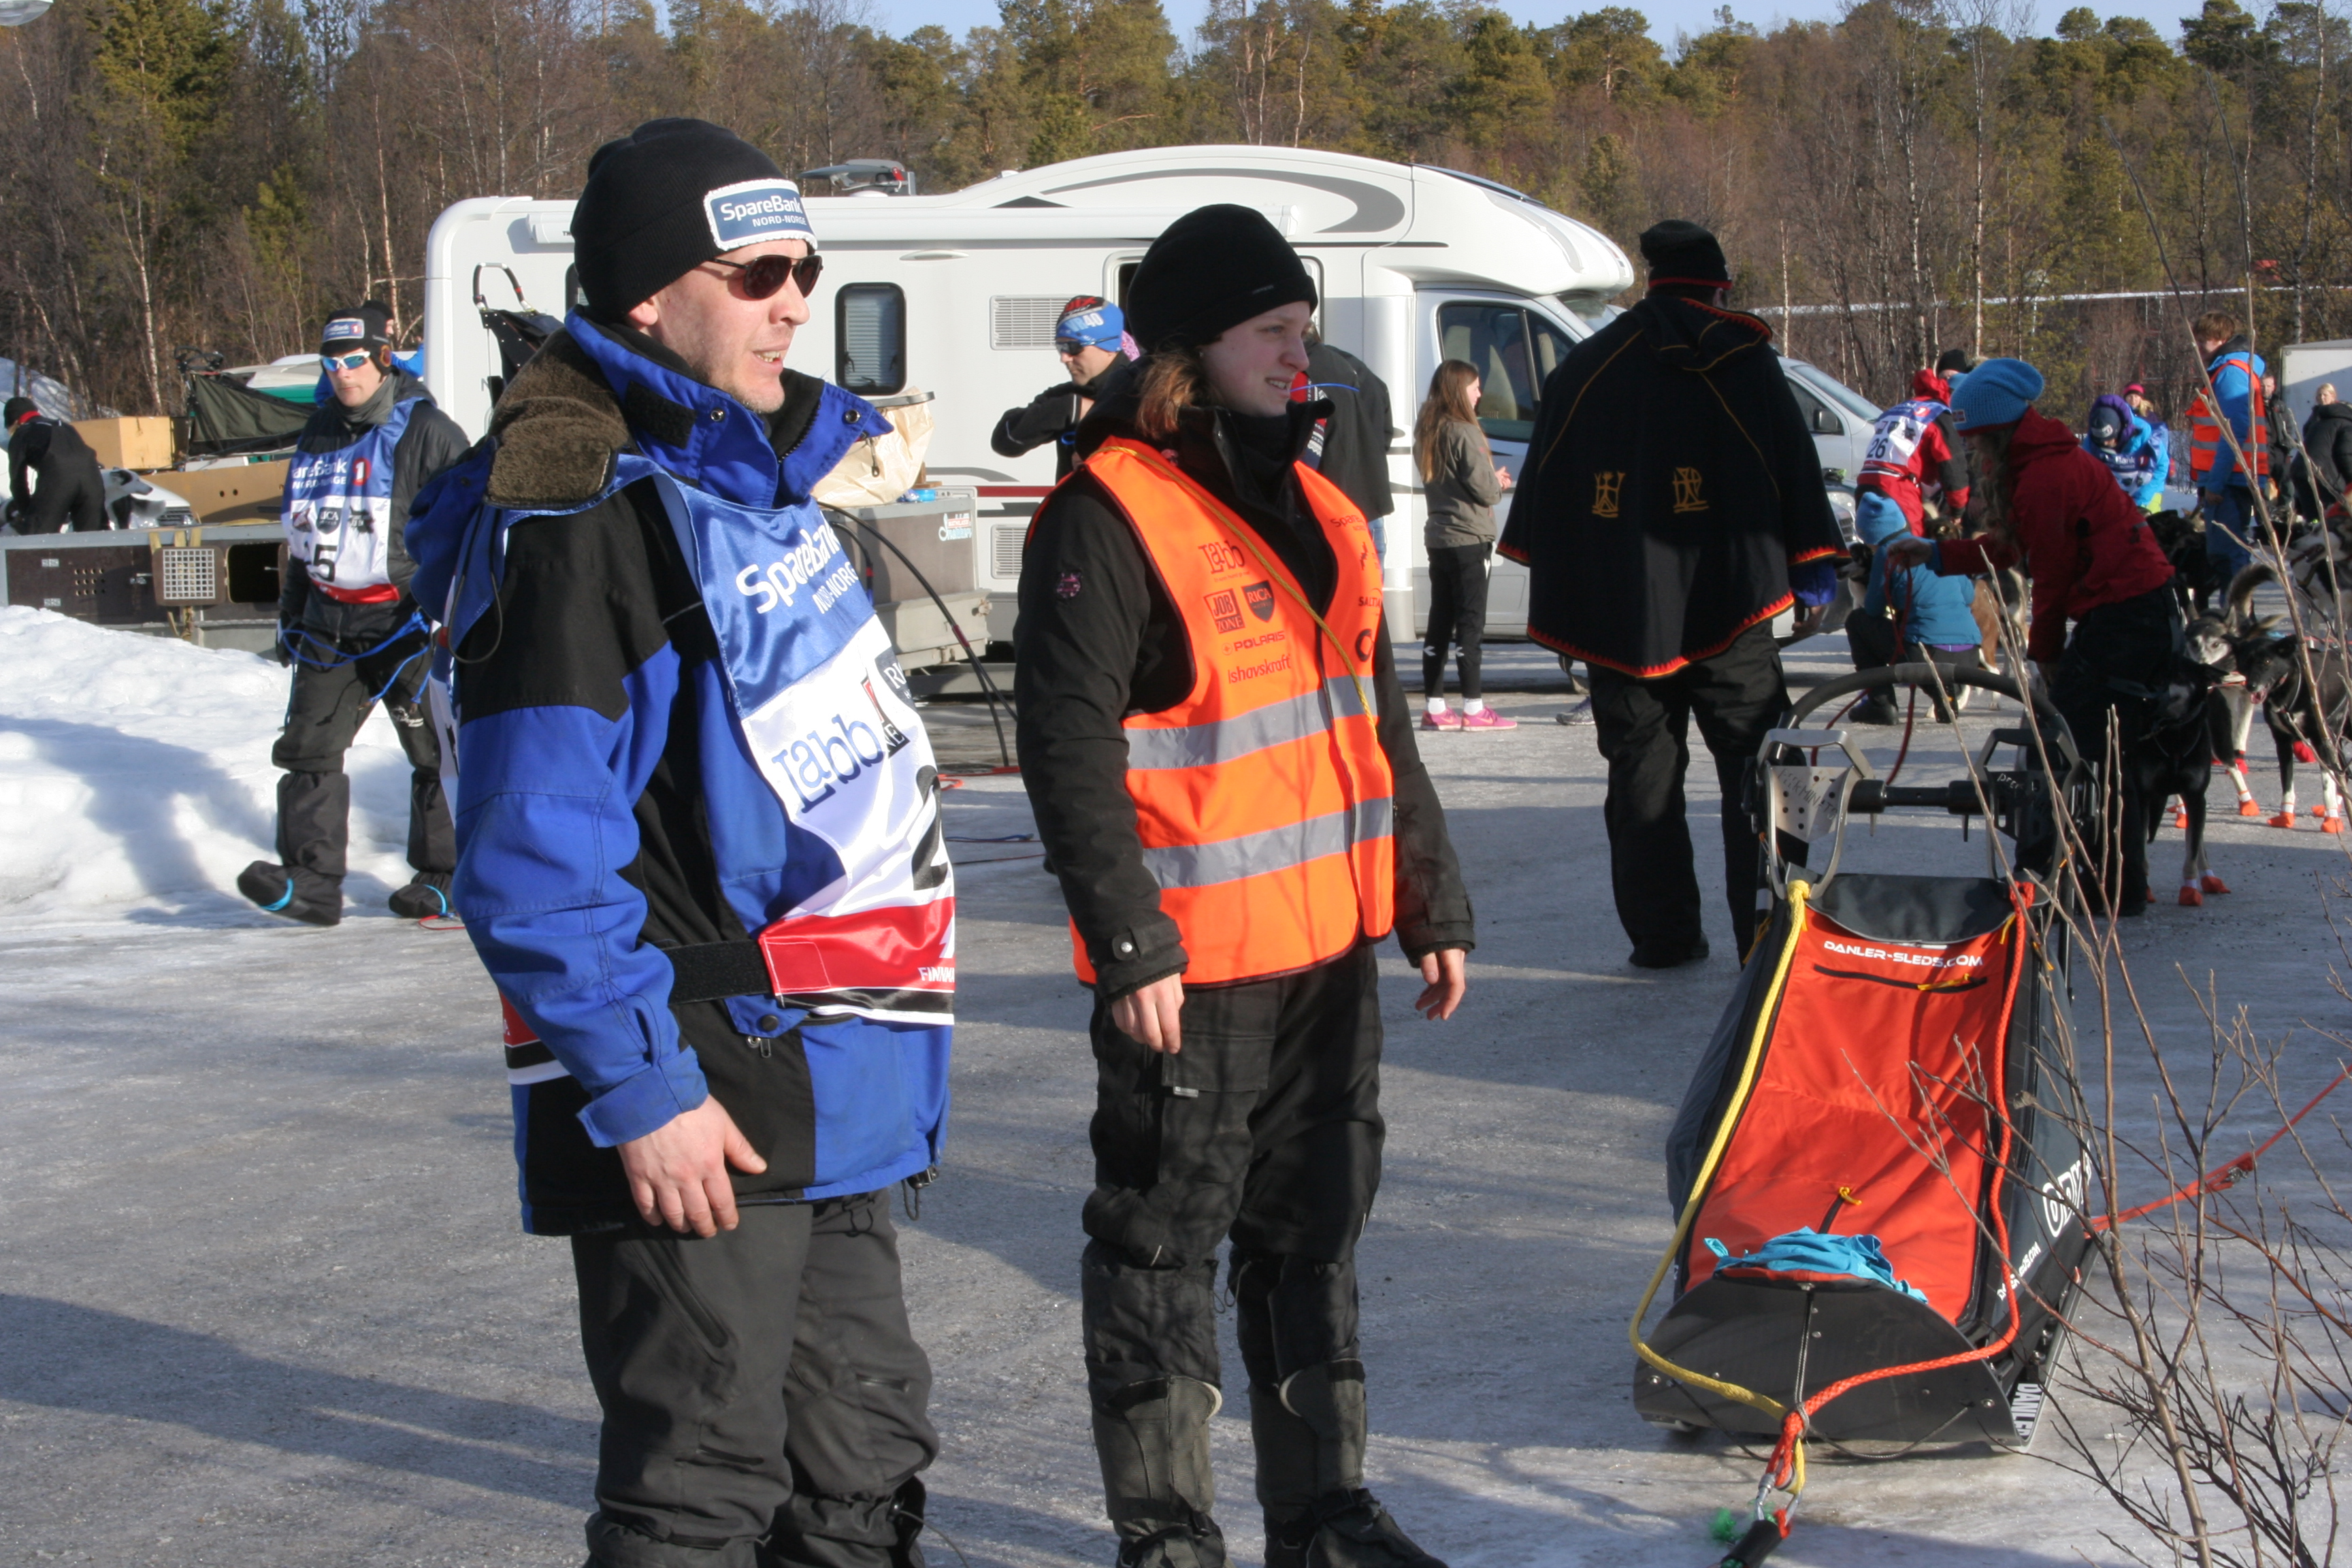 FL 500: Musher & Handler